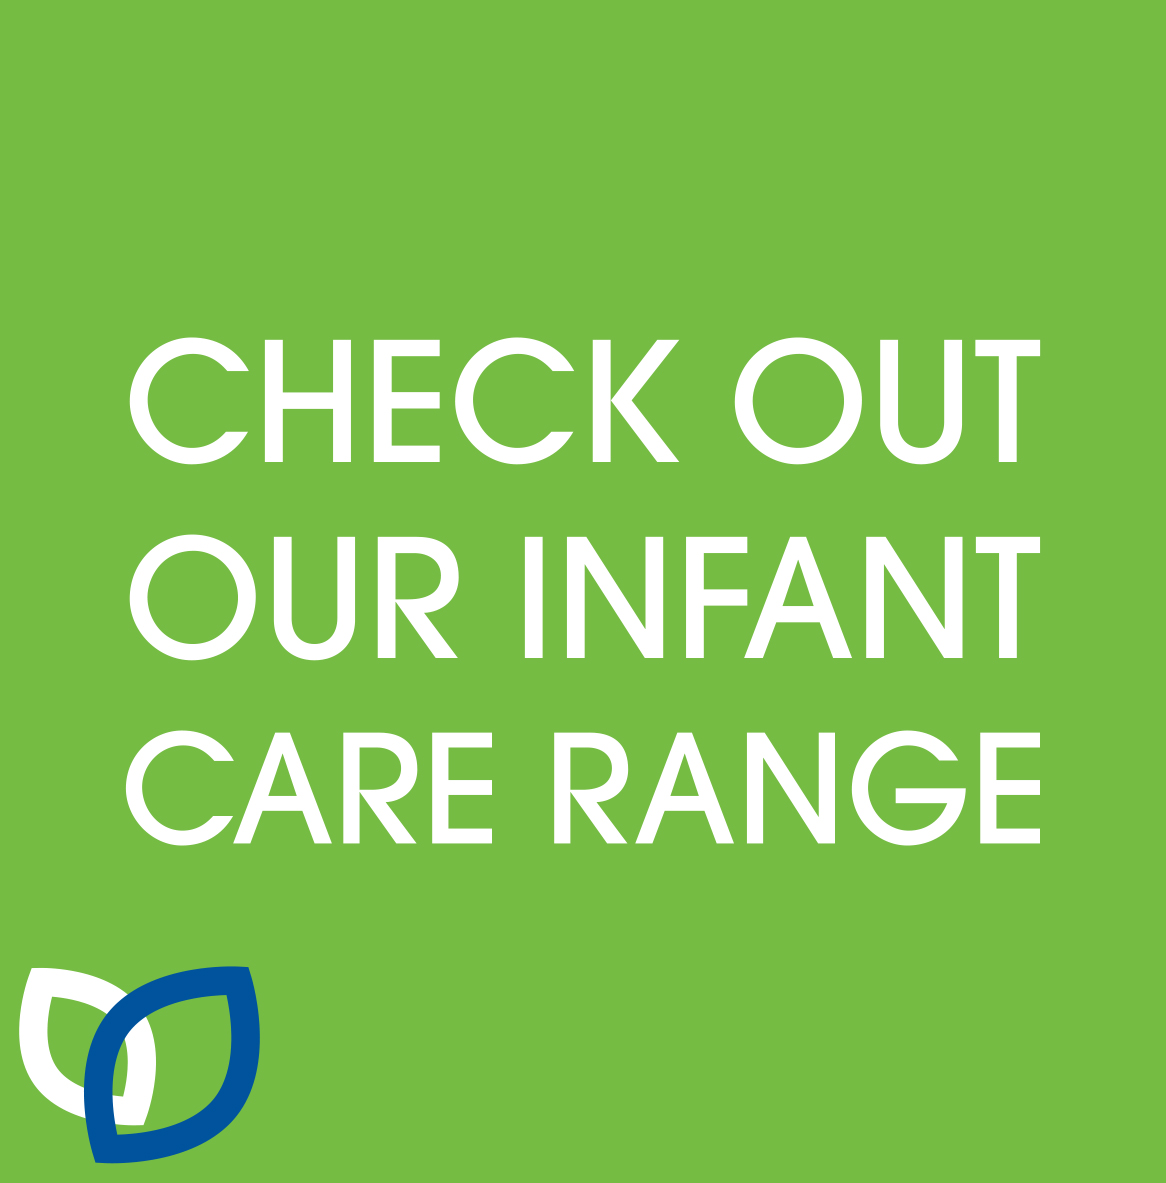 Check out our infant care range